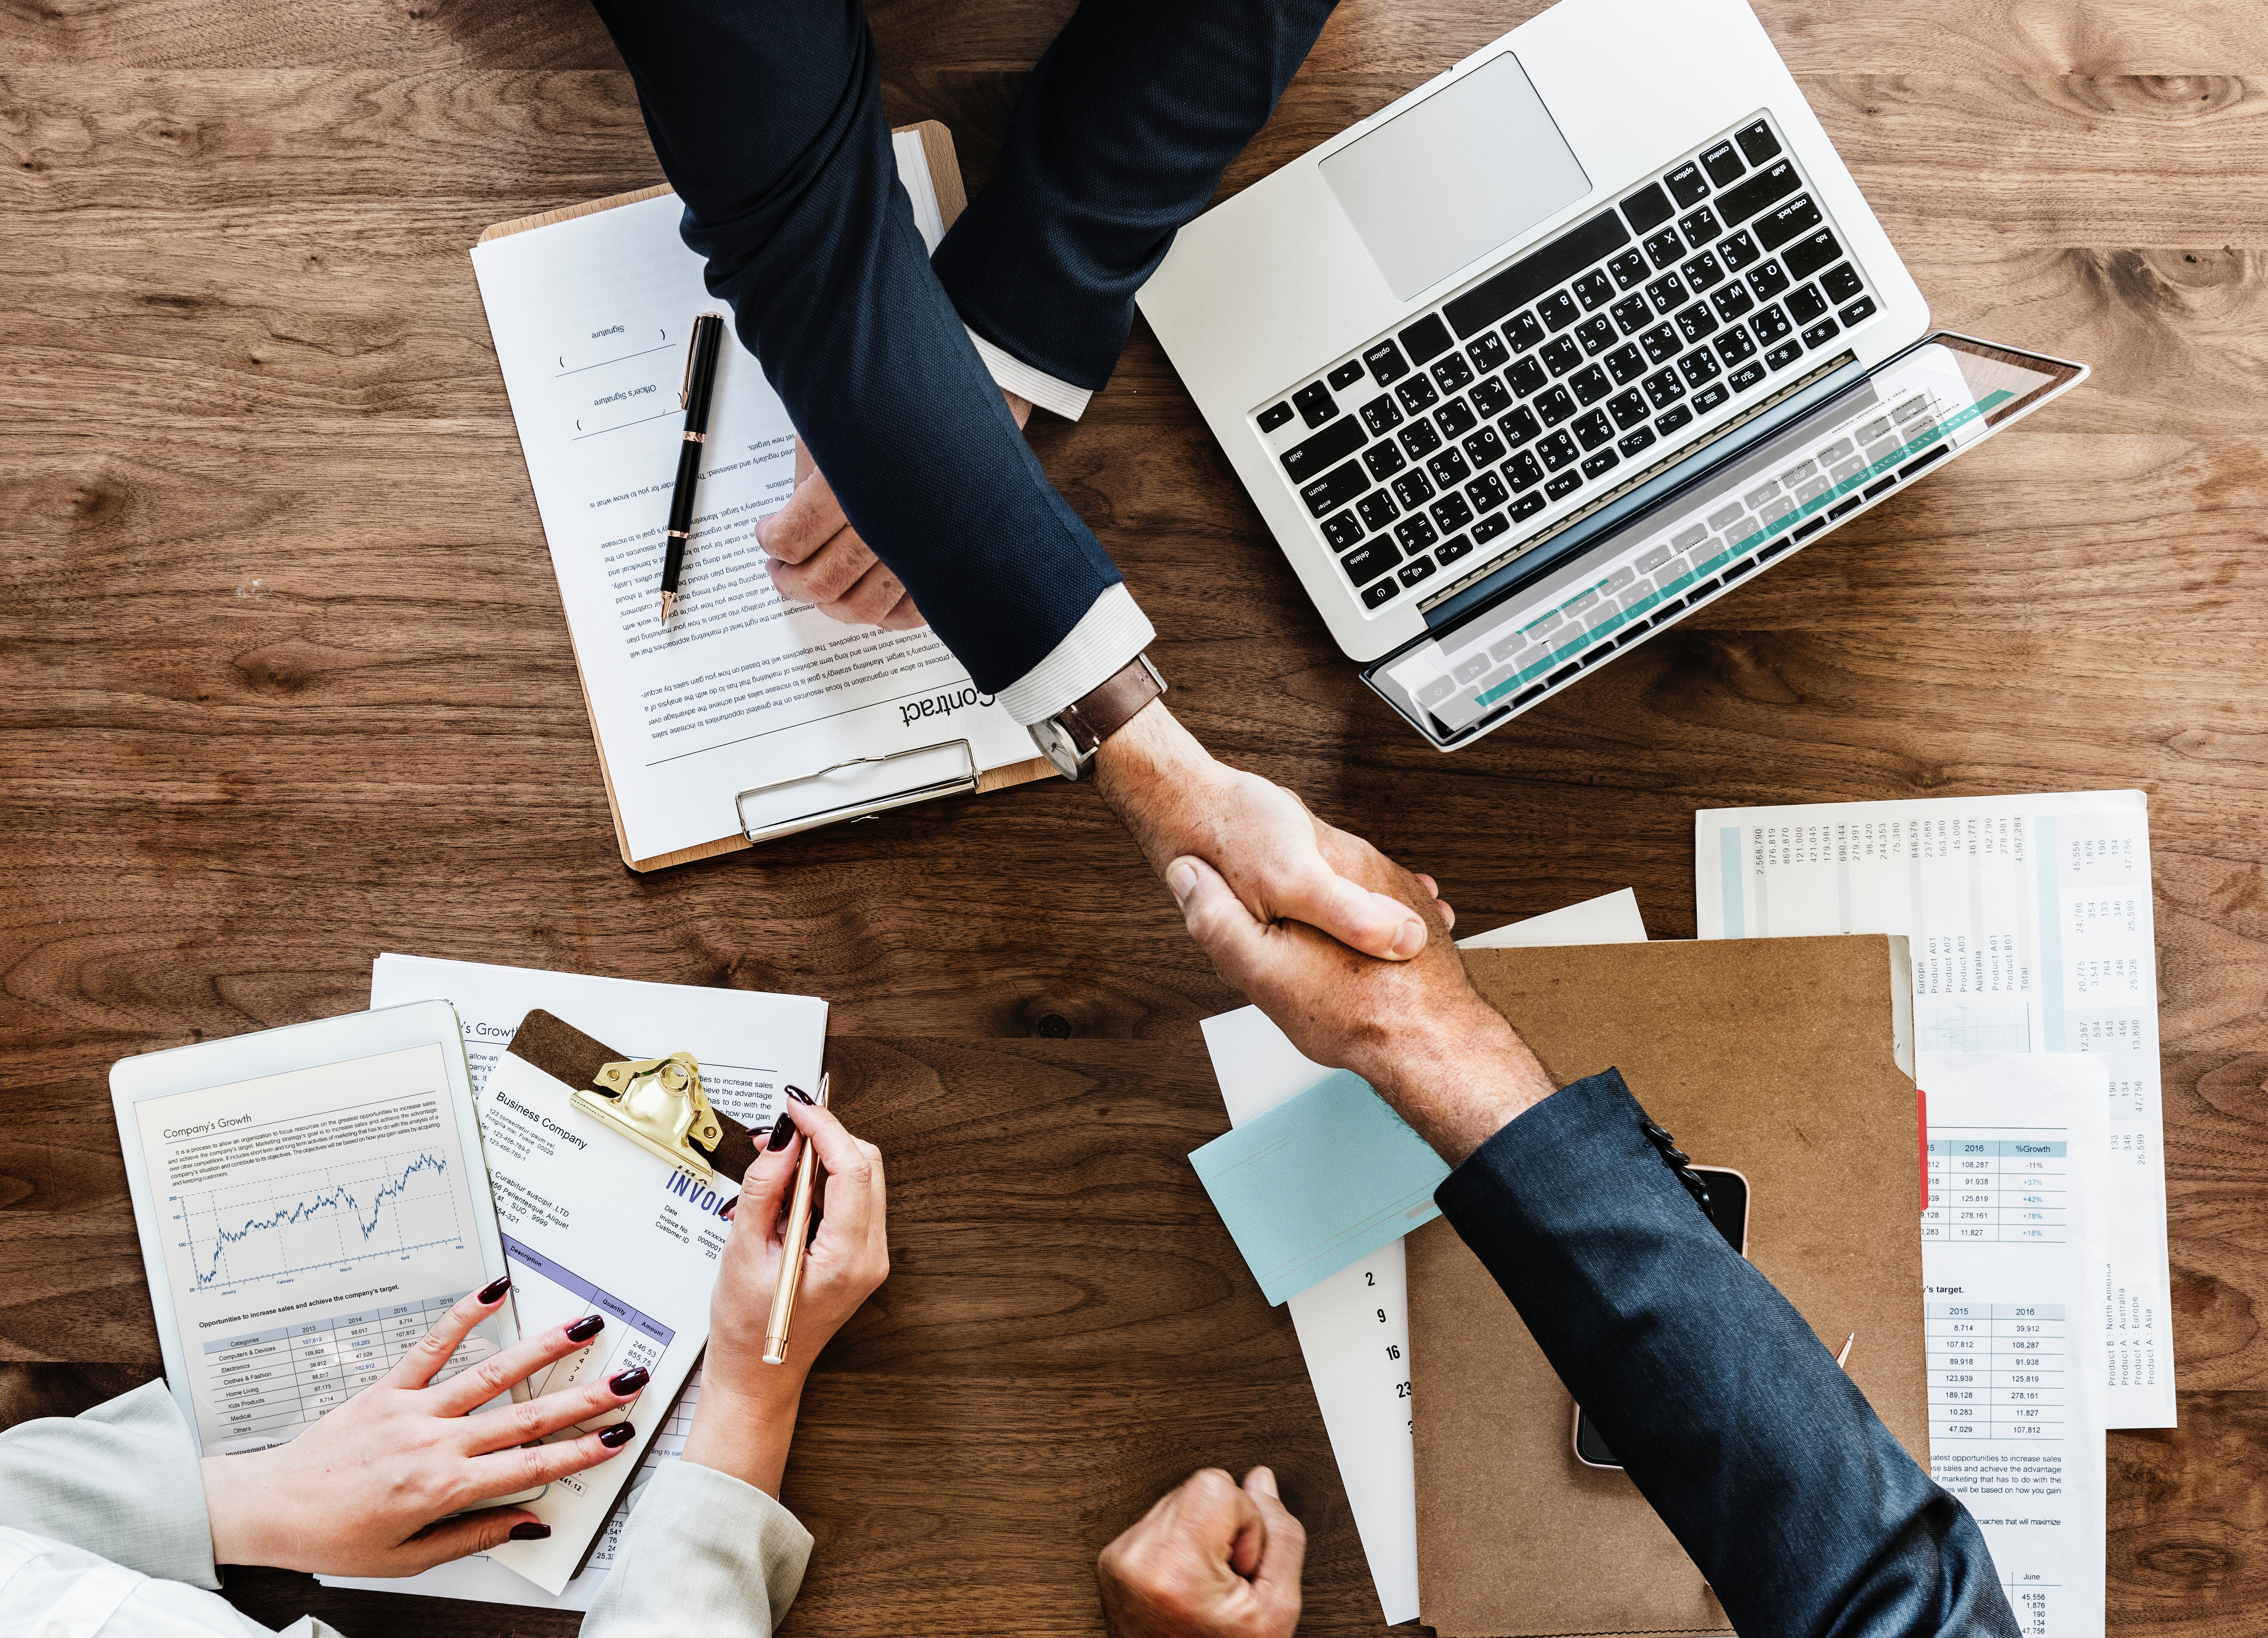 Bird's eye view of two people shaking hands over desk